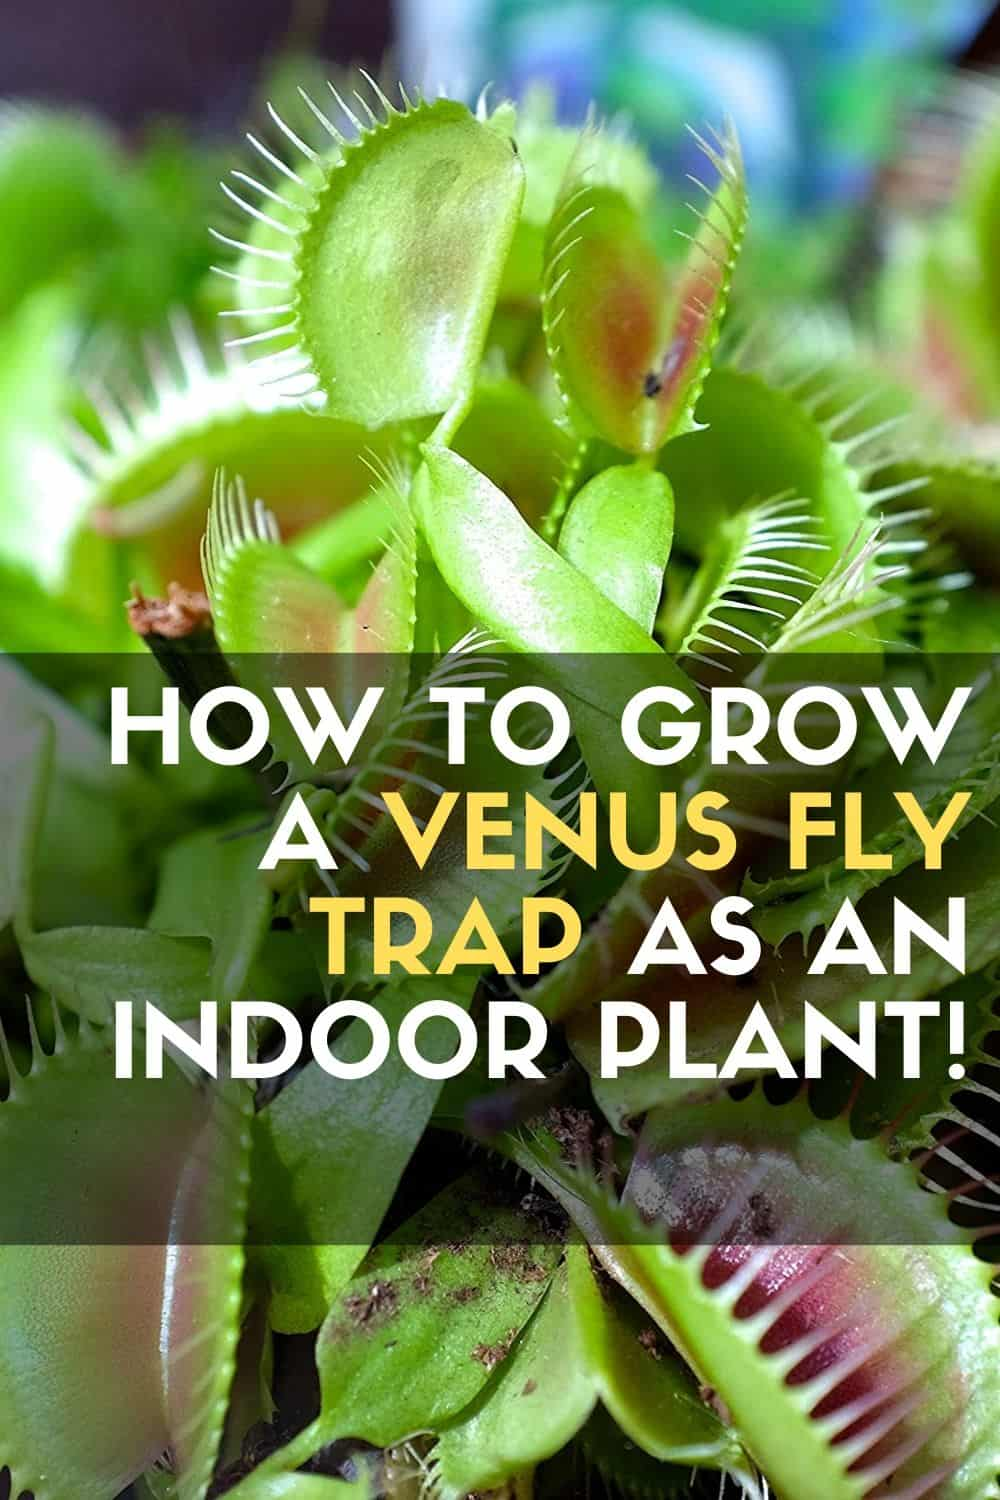 How to Grow a VENUS FLY TRAP as an Indoor Plant